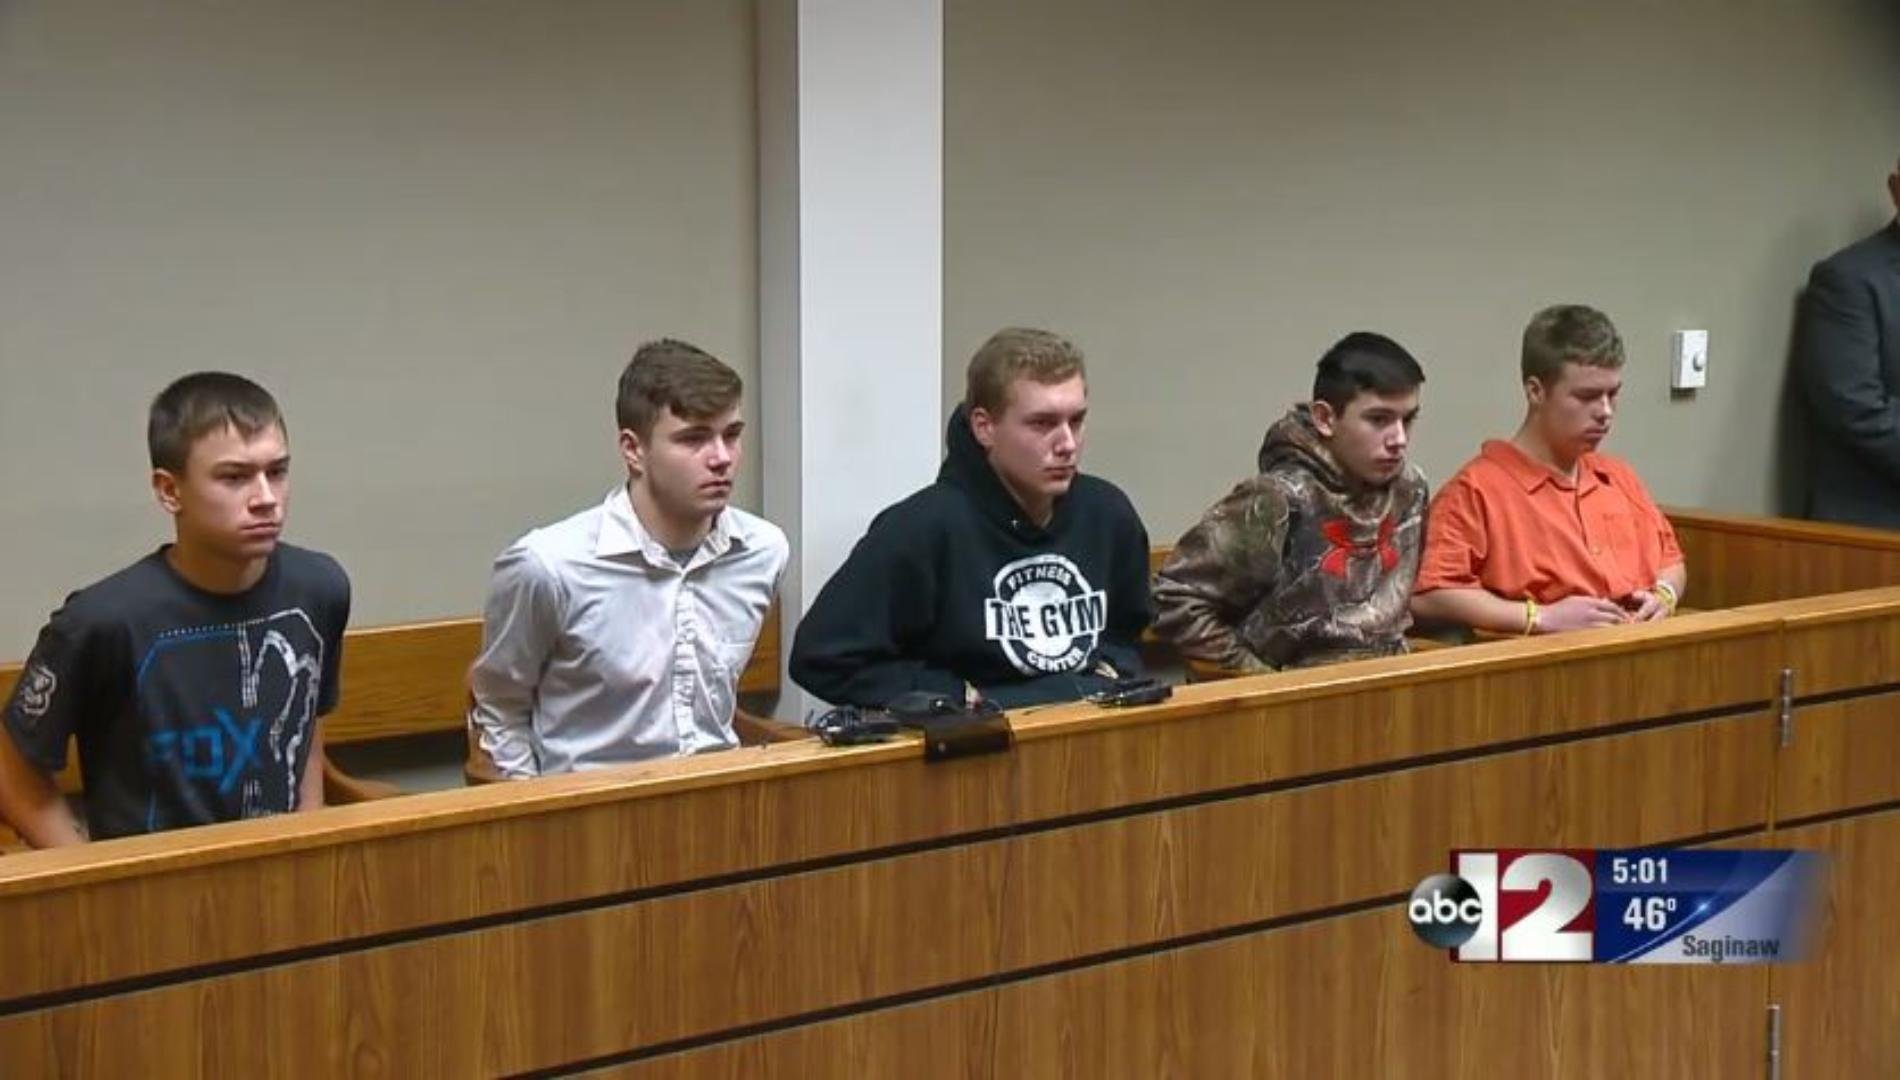 The Michigan teens who pleaded guilty to throwing a rock off a highway overpass are seen in court. (Credit: WJRT)